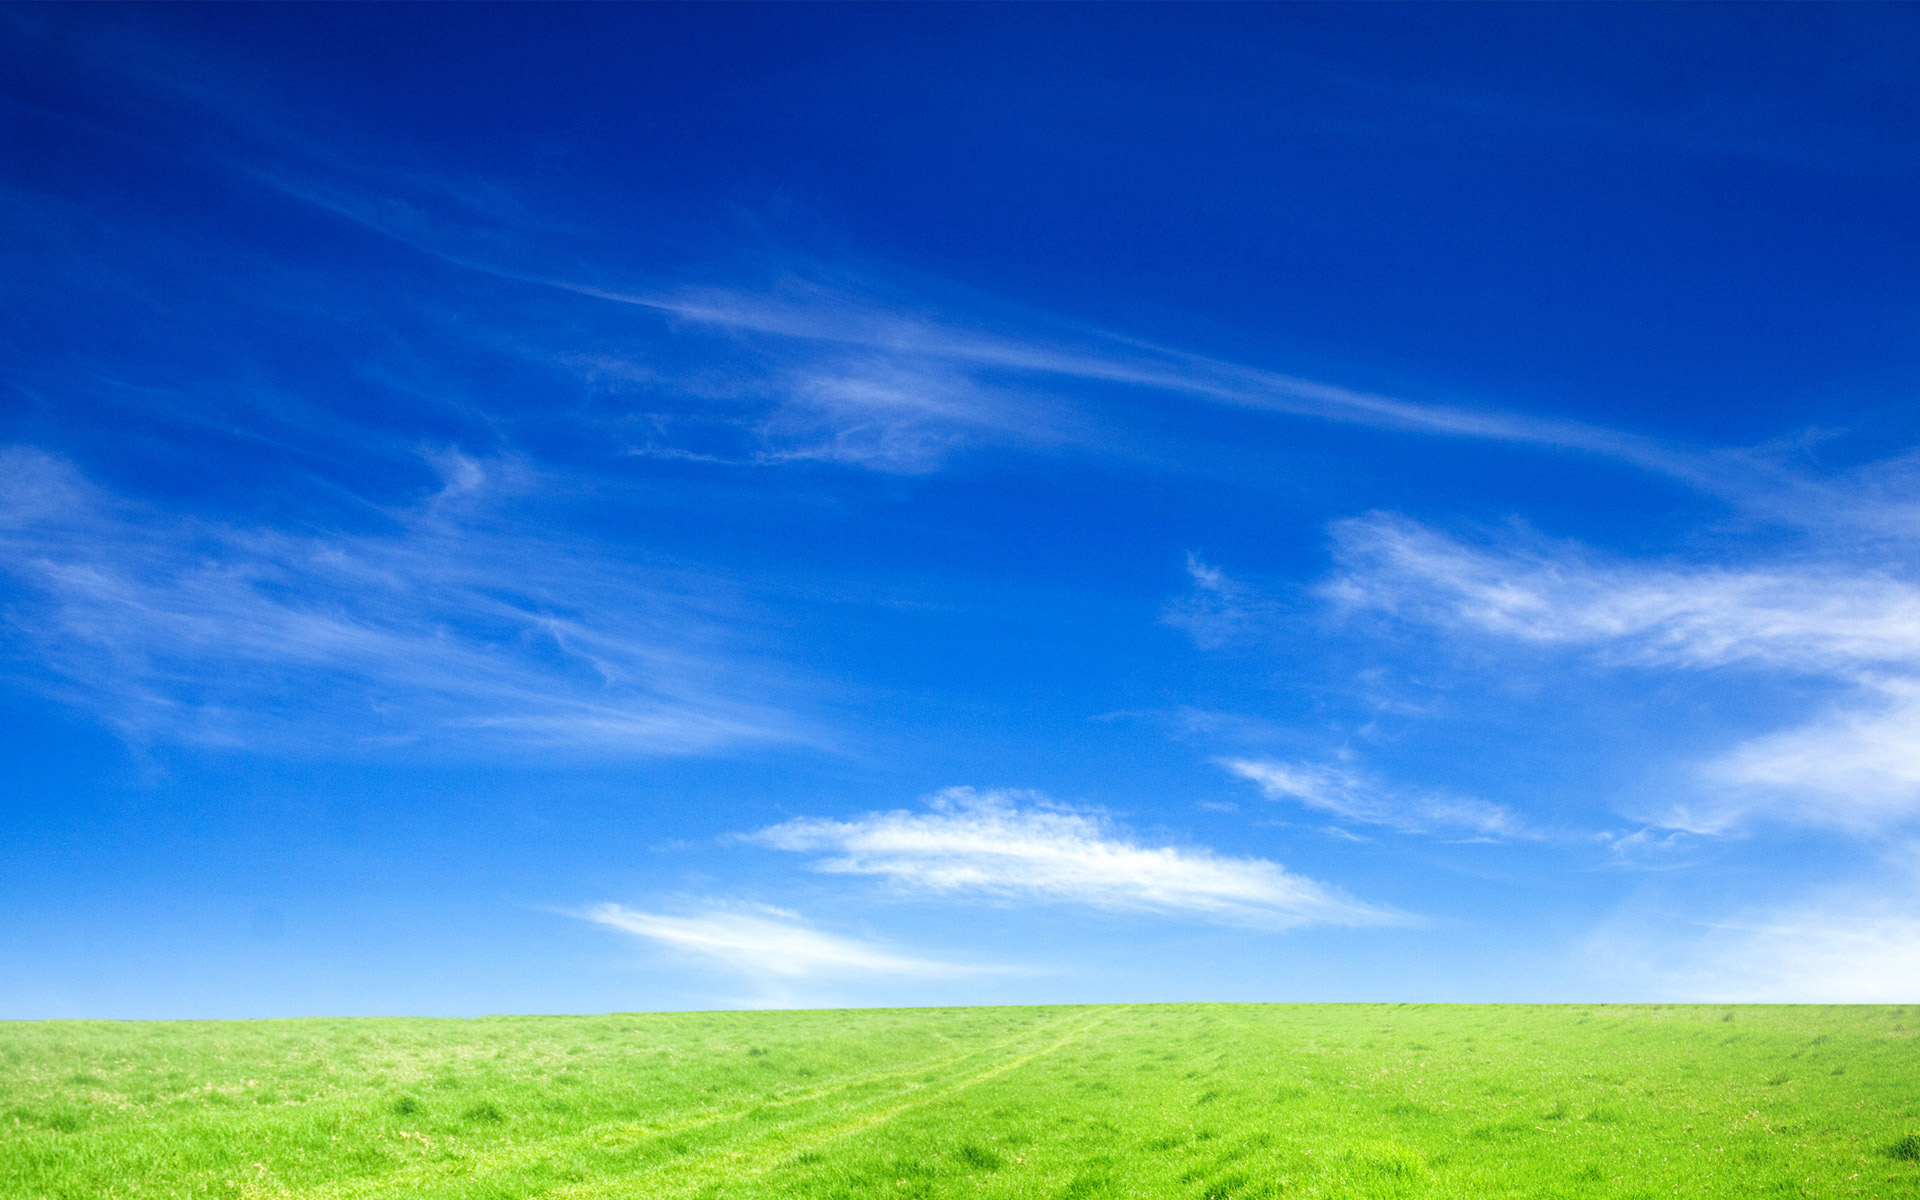 blue sky and green grass hd | Backgrounds | Pinterest | To be